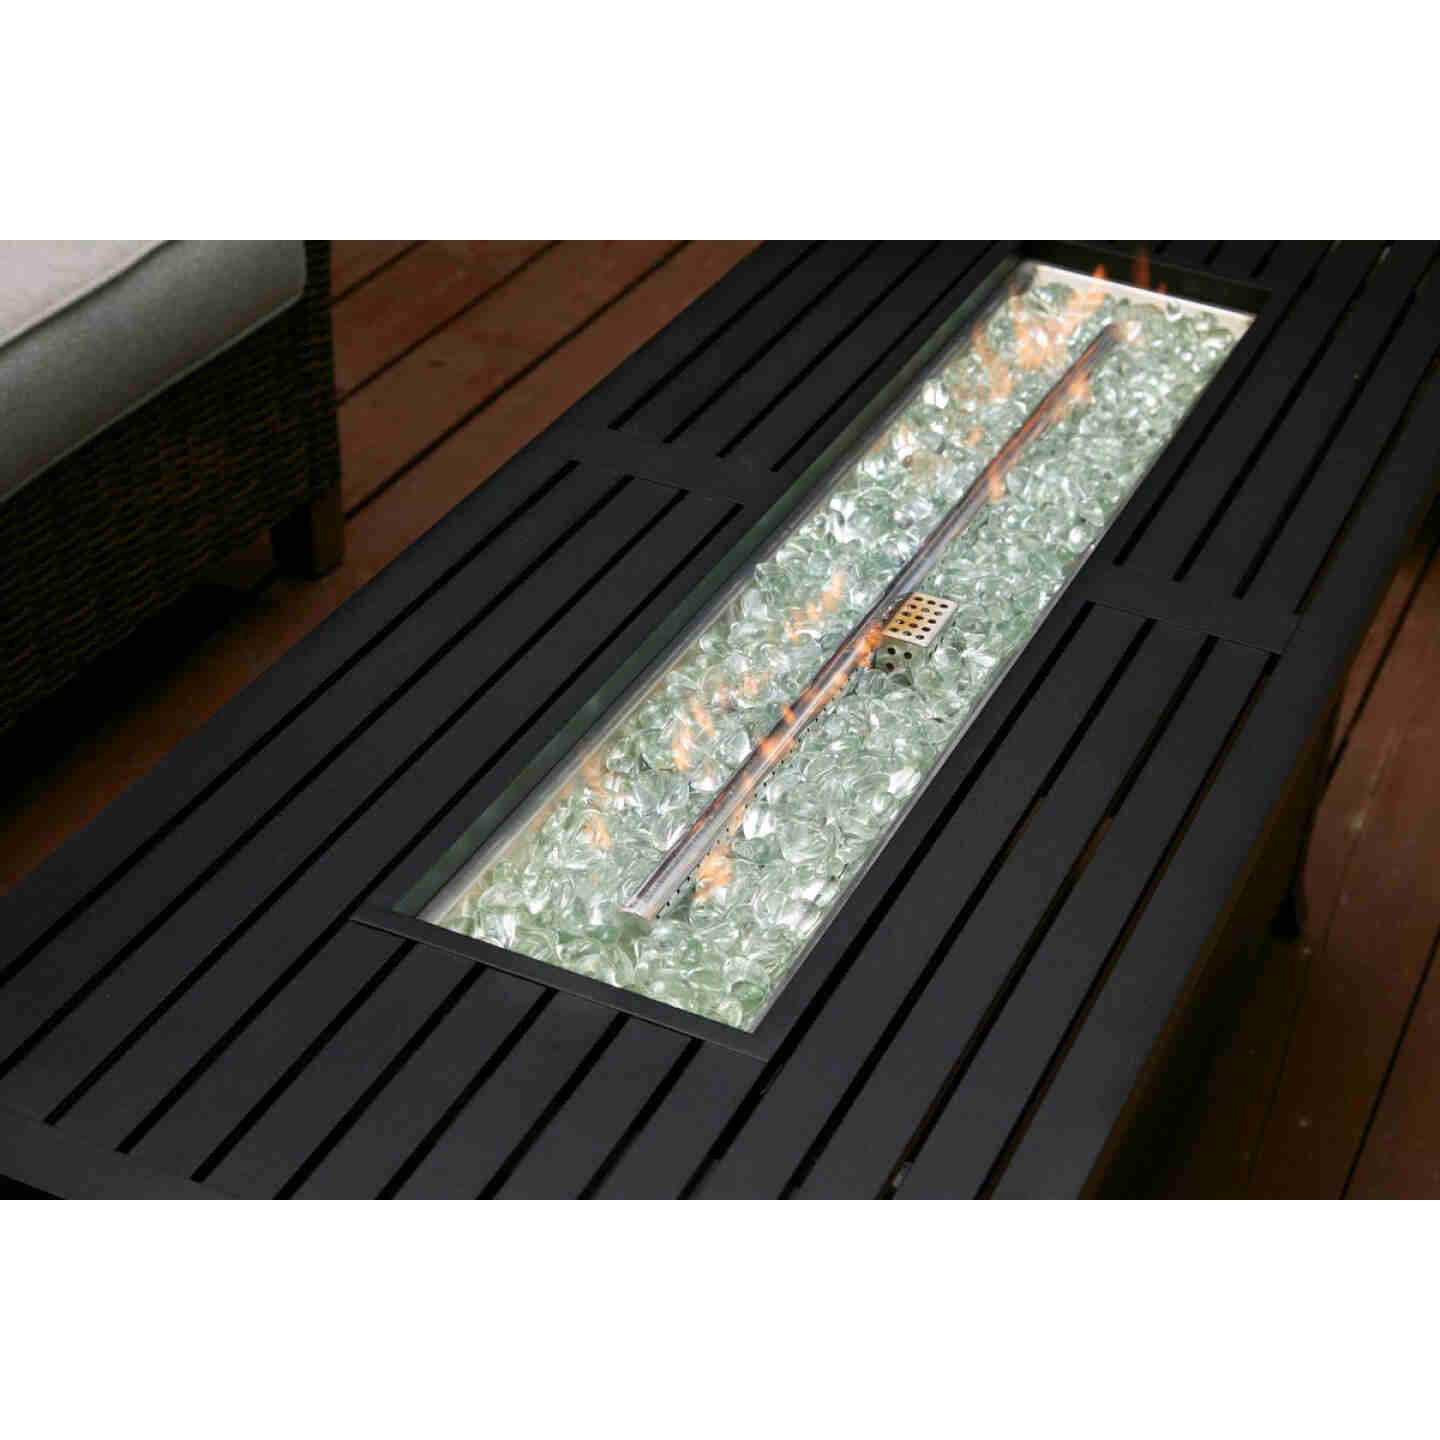 Outdoor Expressions 56 In. x 21 In. Rectangular Propane Fire Pit Table Image 4